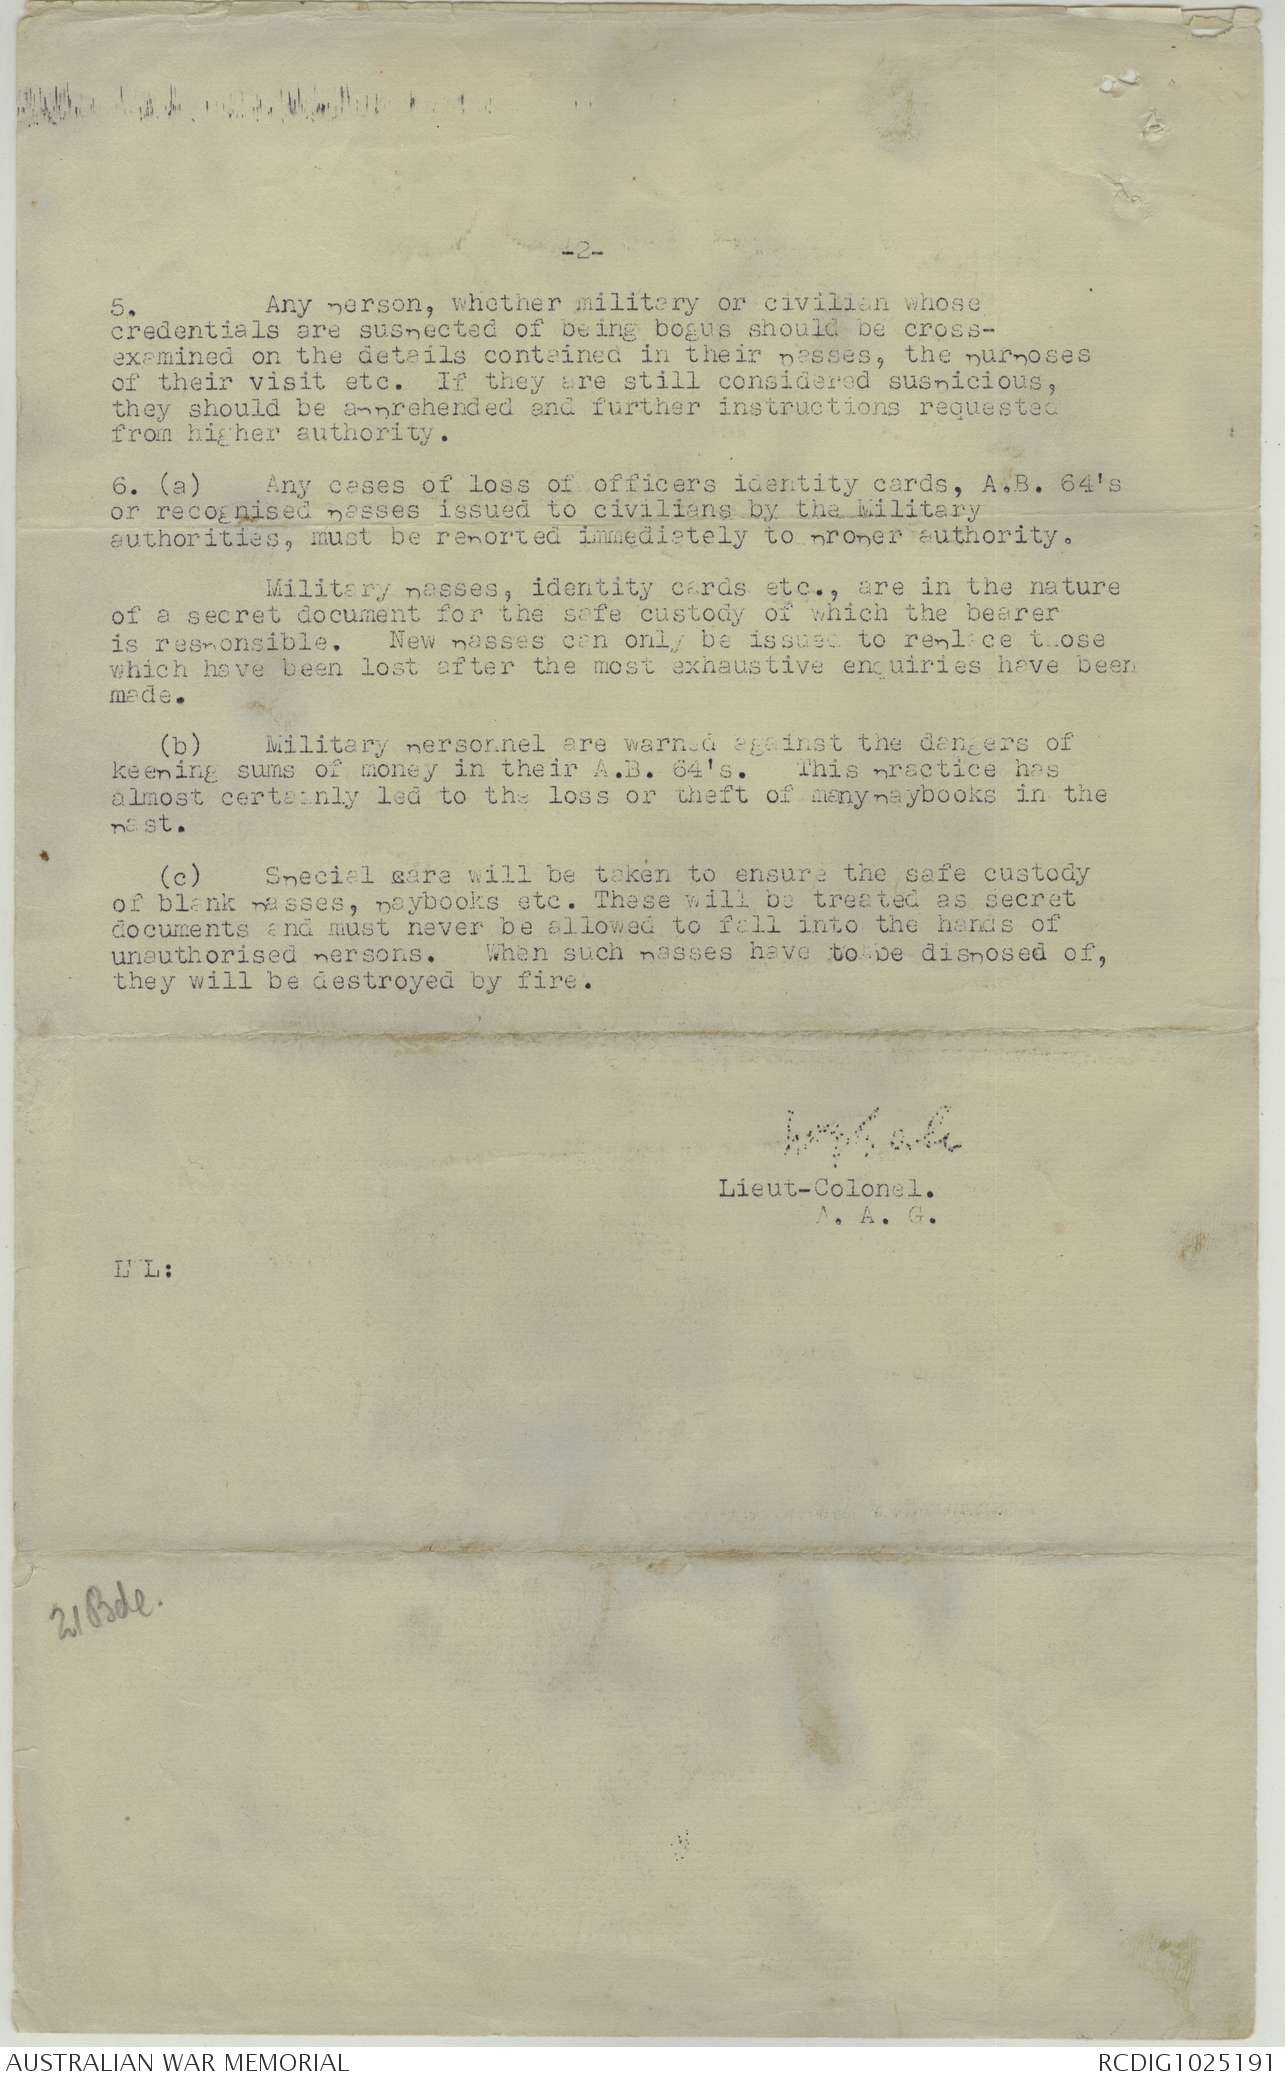 AWM52 8 3 27 31 July 1941 Appendices part 1 of 2